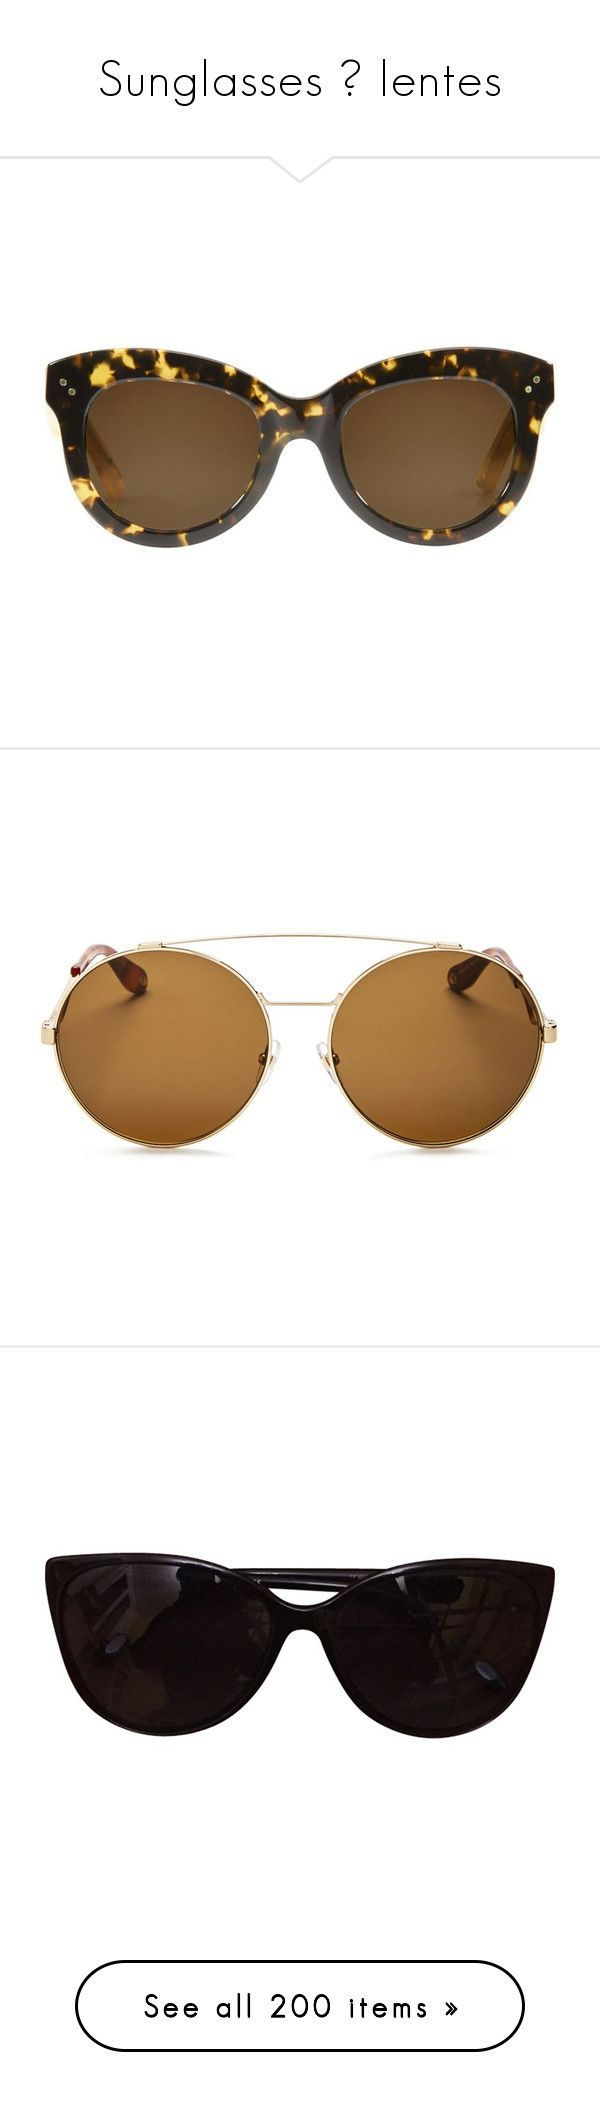 Sunglasses 😎 lentes by georginalan on Polyvore featuring polyvore, women's fashion, accessories, eyewear, sunglasses, oversized tortoise shell sunglasses, matte glasses, matte tortoise sunglasses, oversized eyewear, champagne glasses, jewelry, glasses, óculos, givenchy, oversized jewelry, givenchy jewelry, black, tiffany co sunglasses, tiffany co glasses, tortoise she, tortoise shell eyewear, tortoise glasses, tortoiseshell glasses, tortoise shell sunglasses, metal glasses, coral, coral